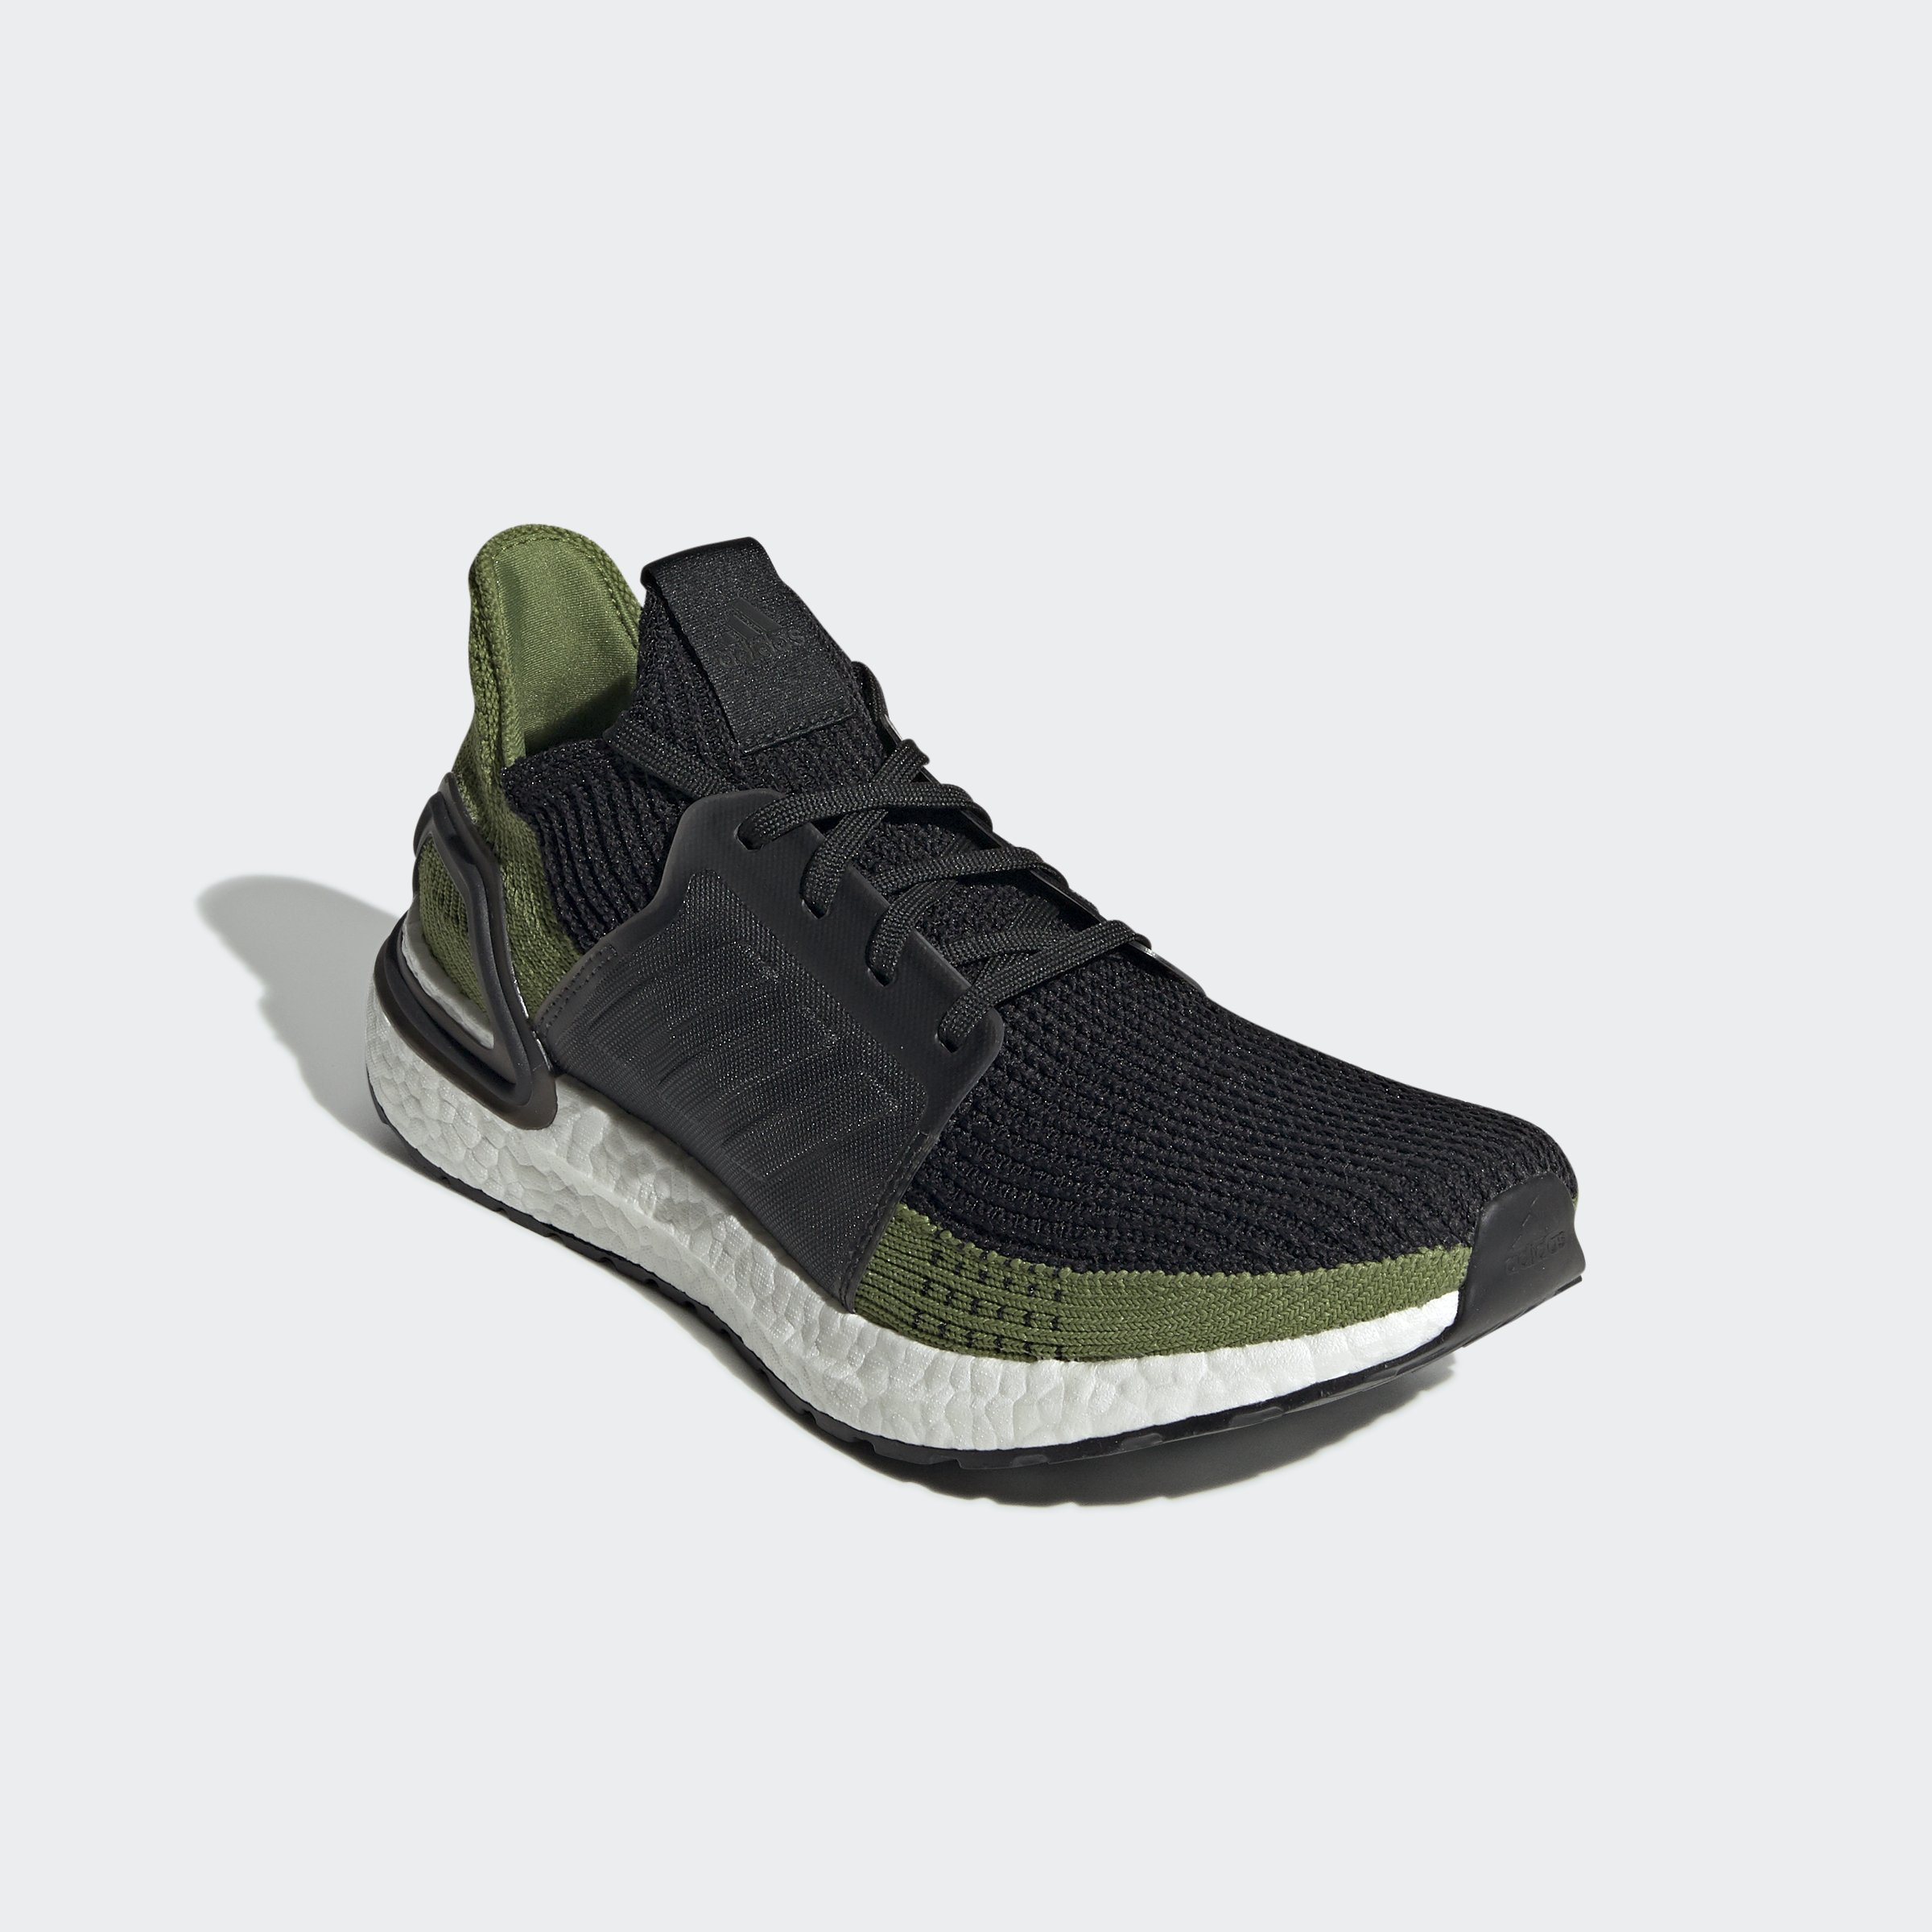 adidas-Ultraboost-19-Shoes-Athletic-amp-Sneakers thumbnail 104